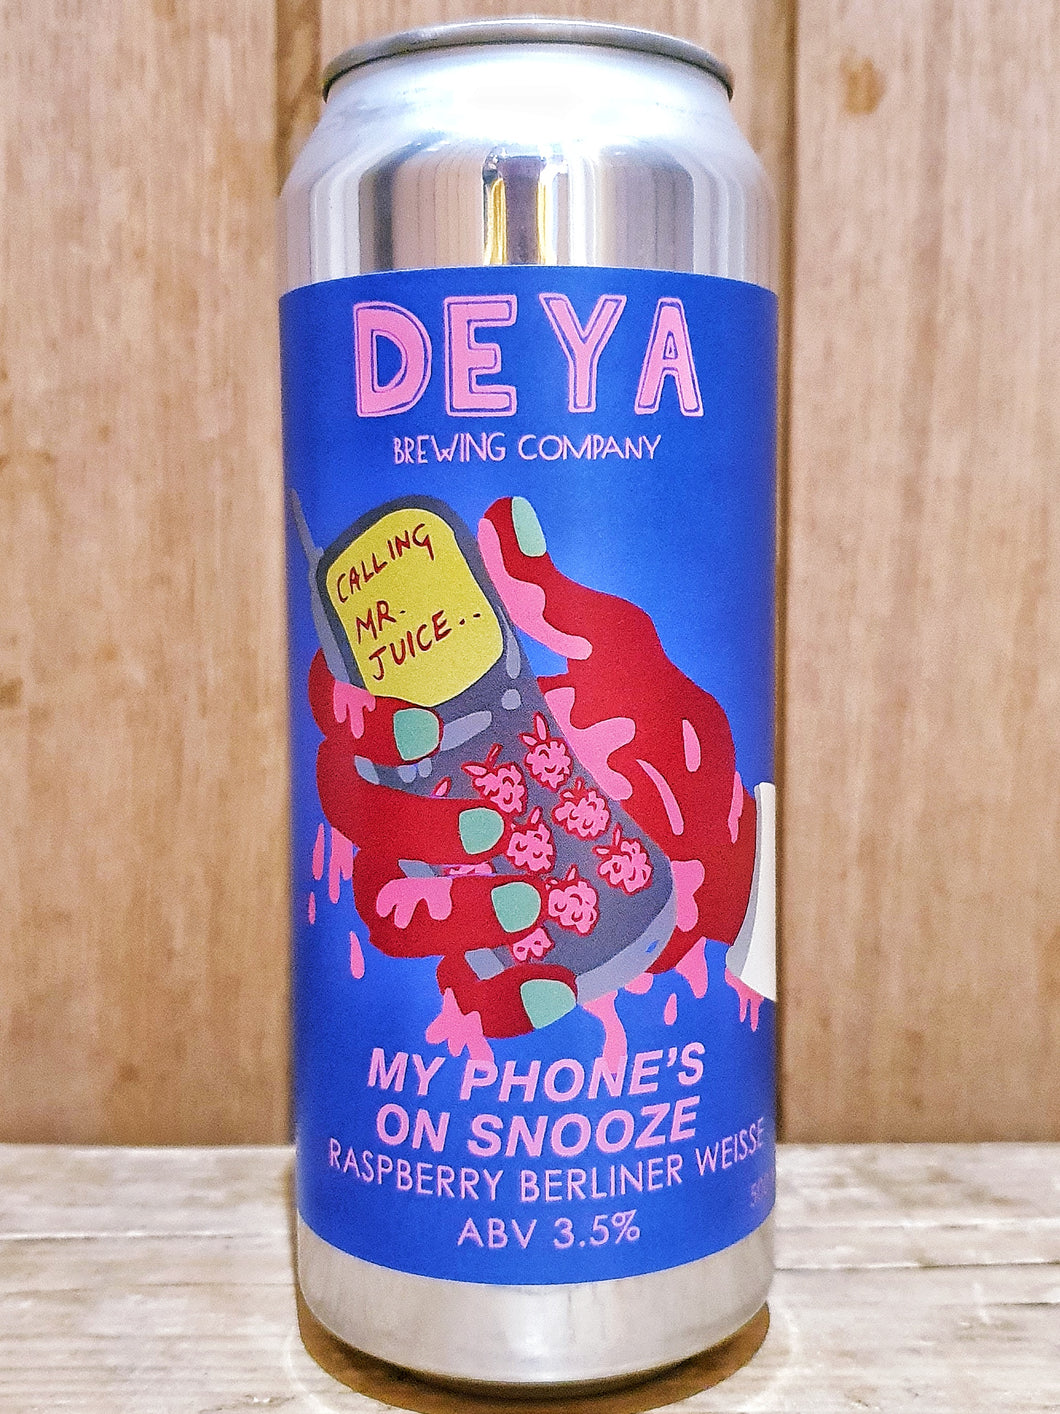 DEYA - My Phone's On Snooze